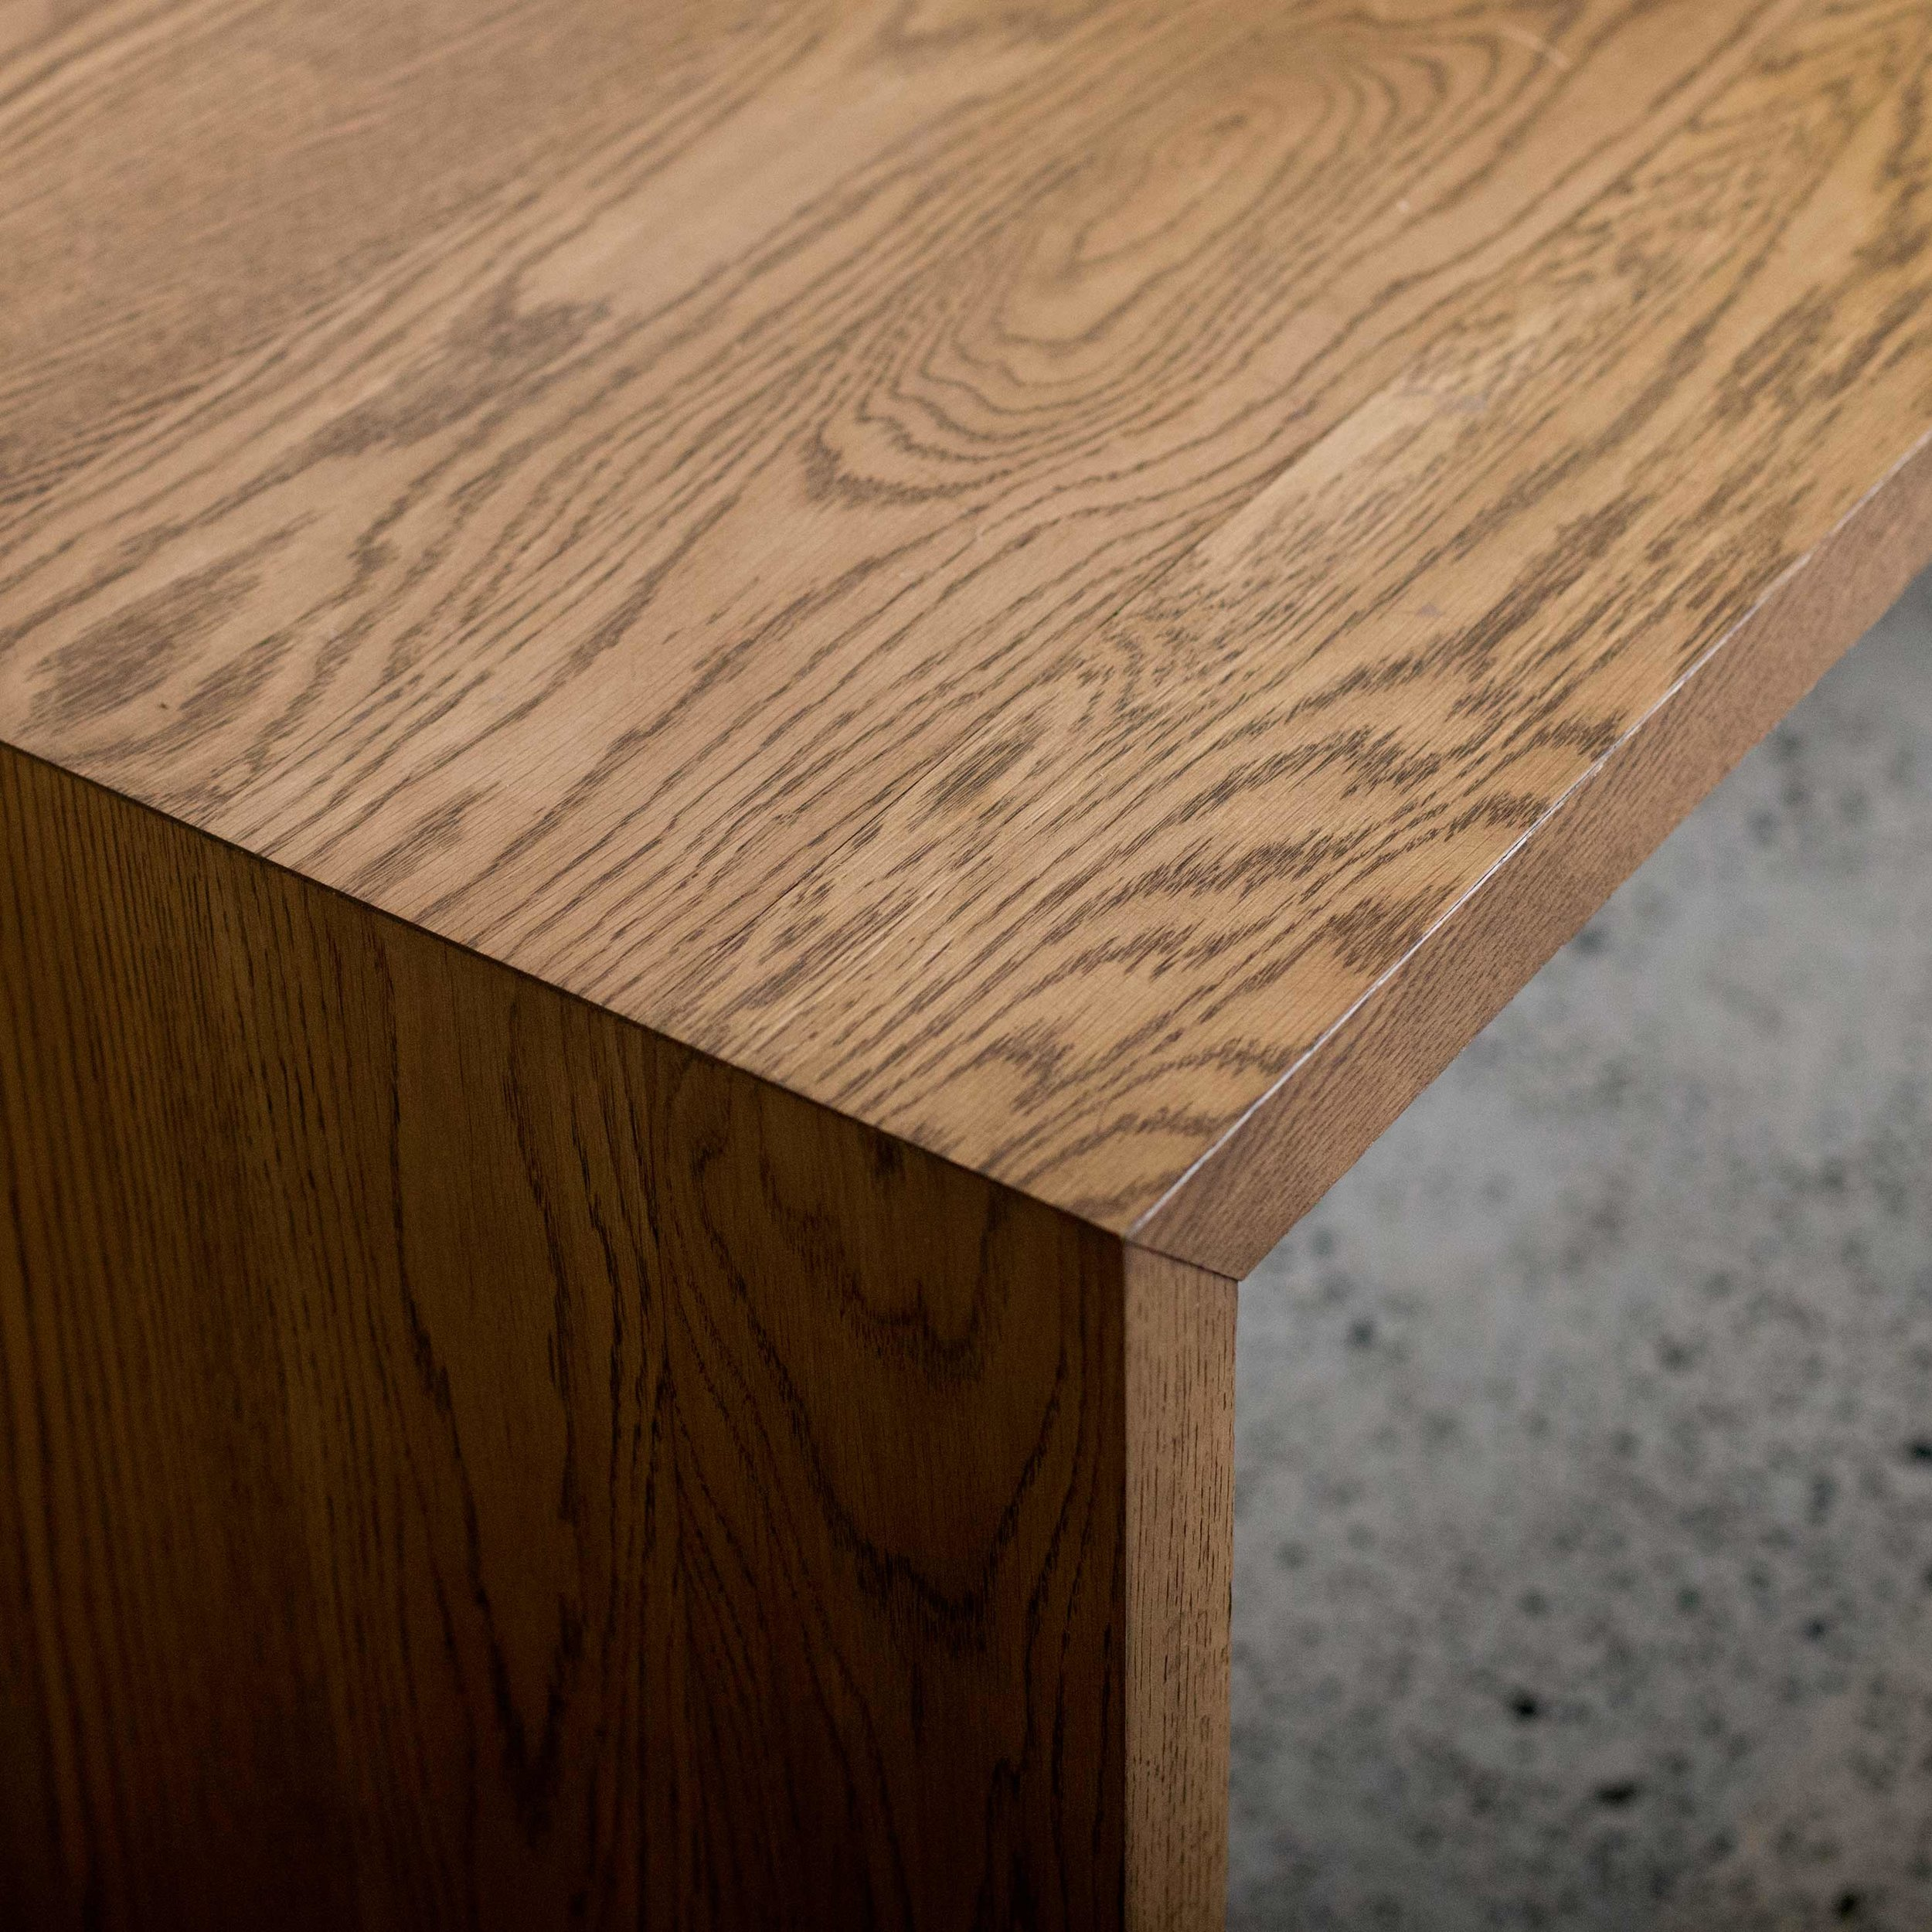 fresh-prince-cp-oak-desk.jpg